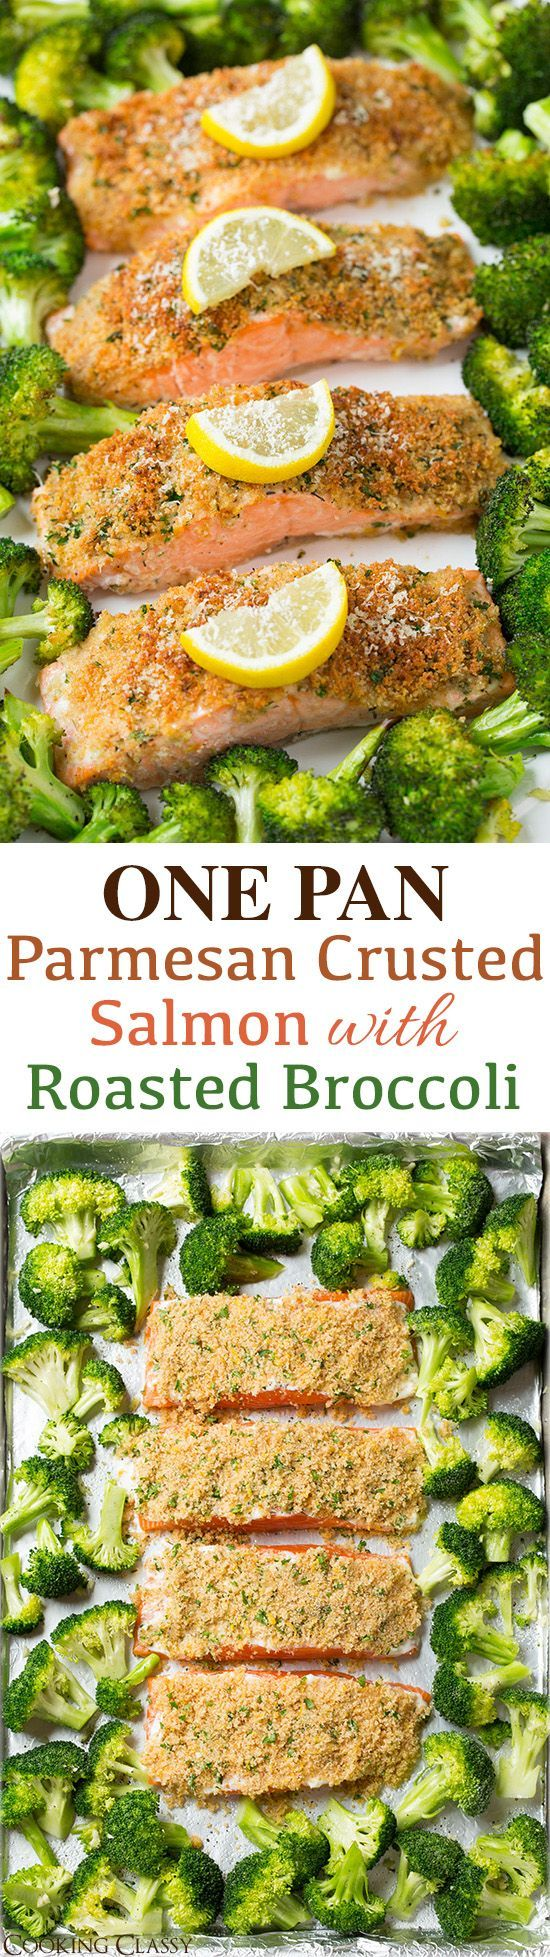 Single Sheet Pan Parmesan Crusted Salmon with Roasted Broccoli - everything is roasted together on one pan so clean up is a breeze! It's healthy and it tastes incredible!